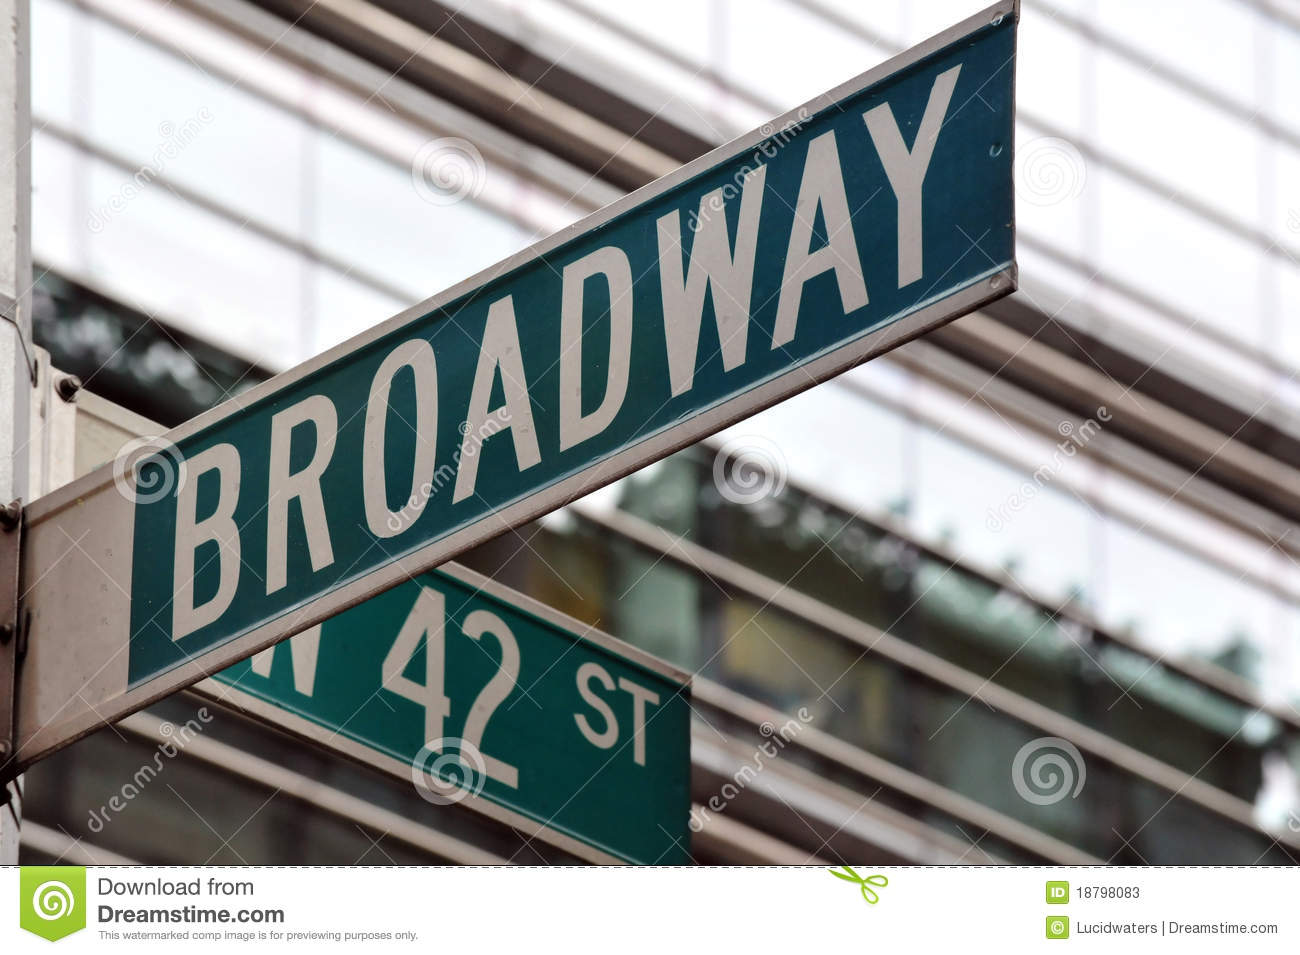 Broadway 42nd street sign stock image. Image of intersection.